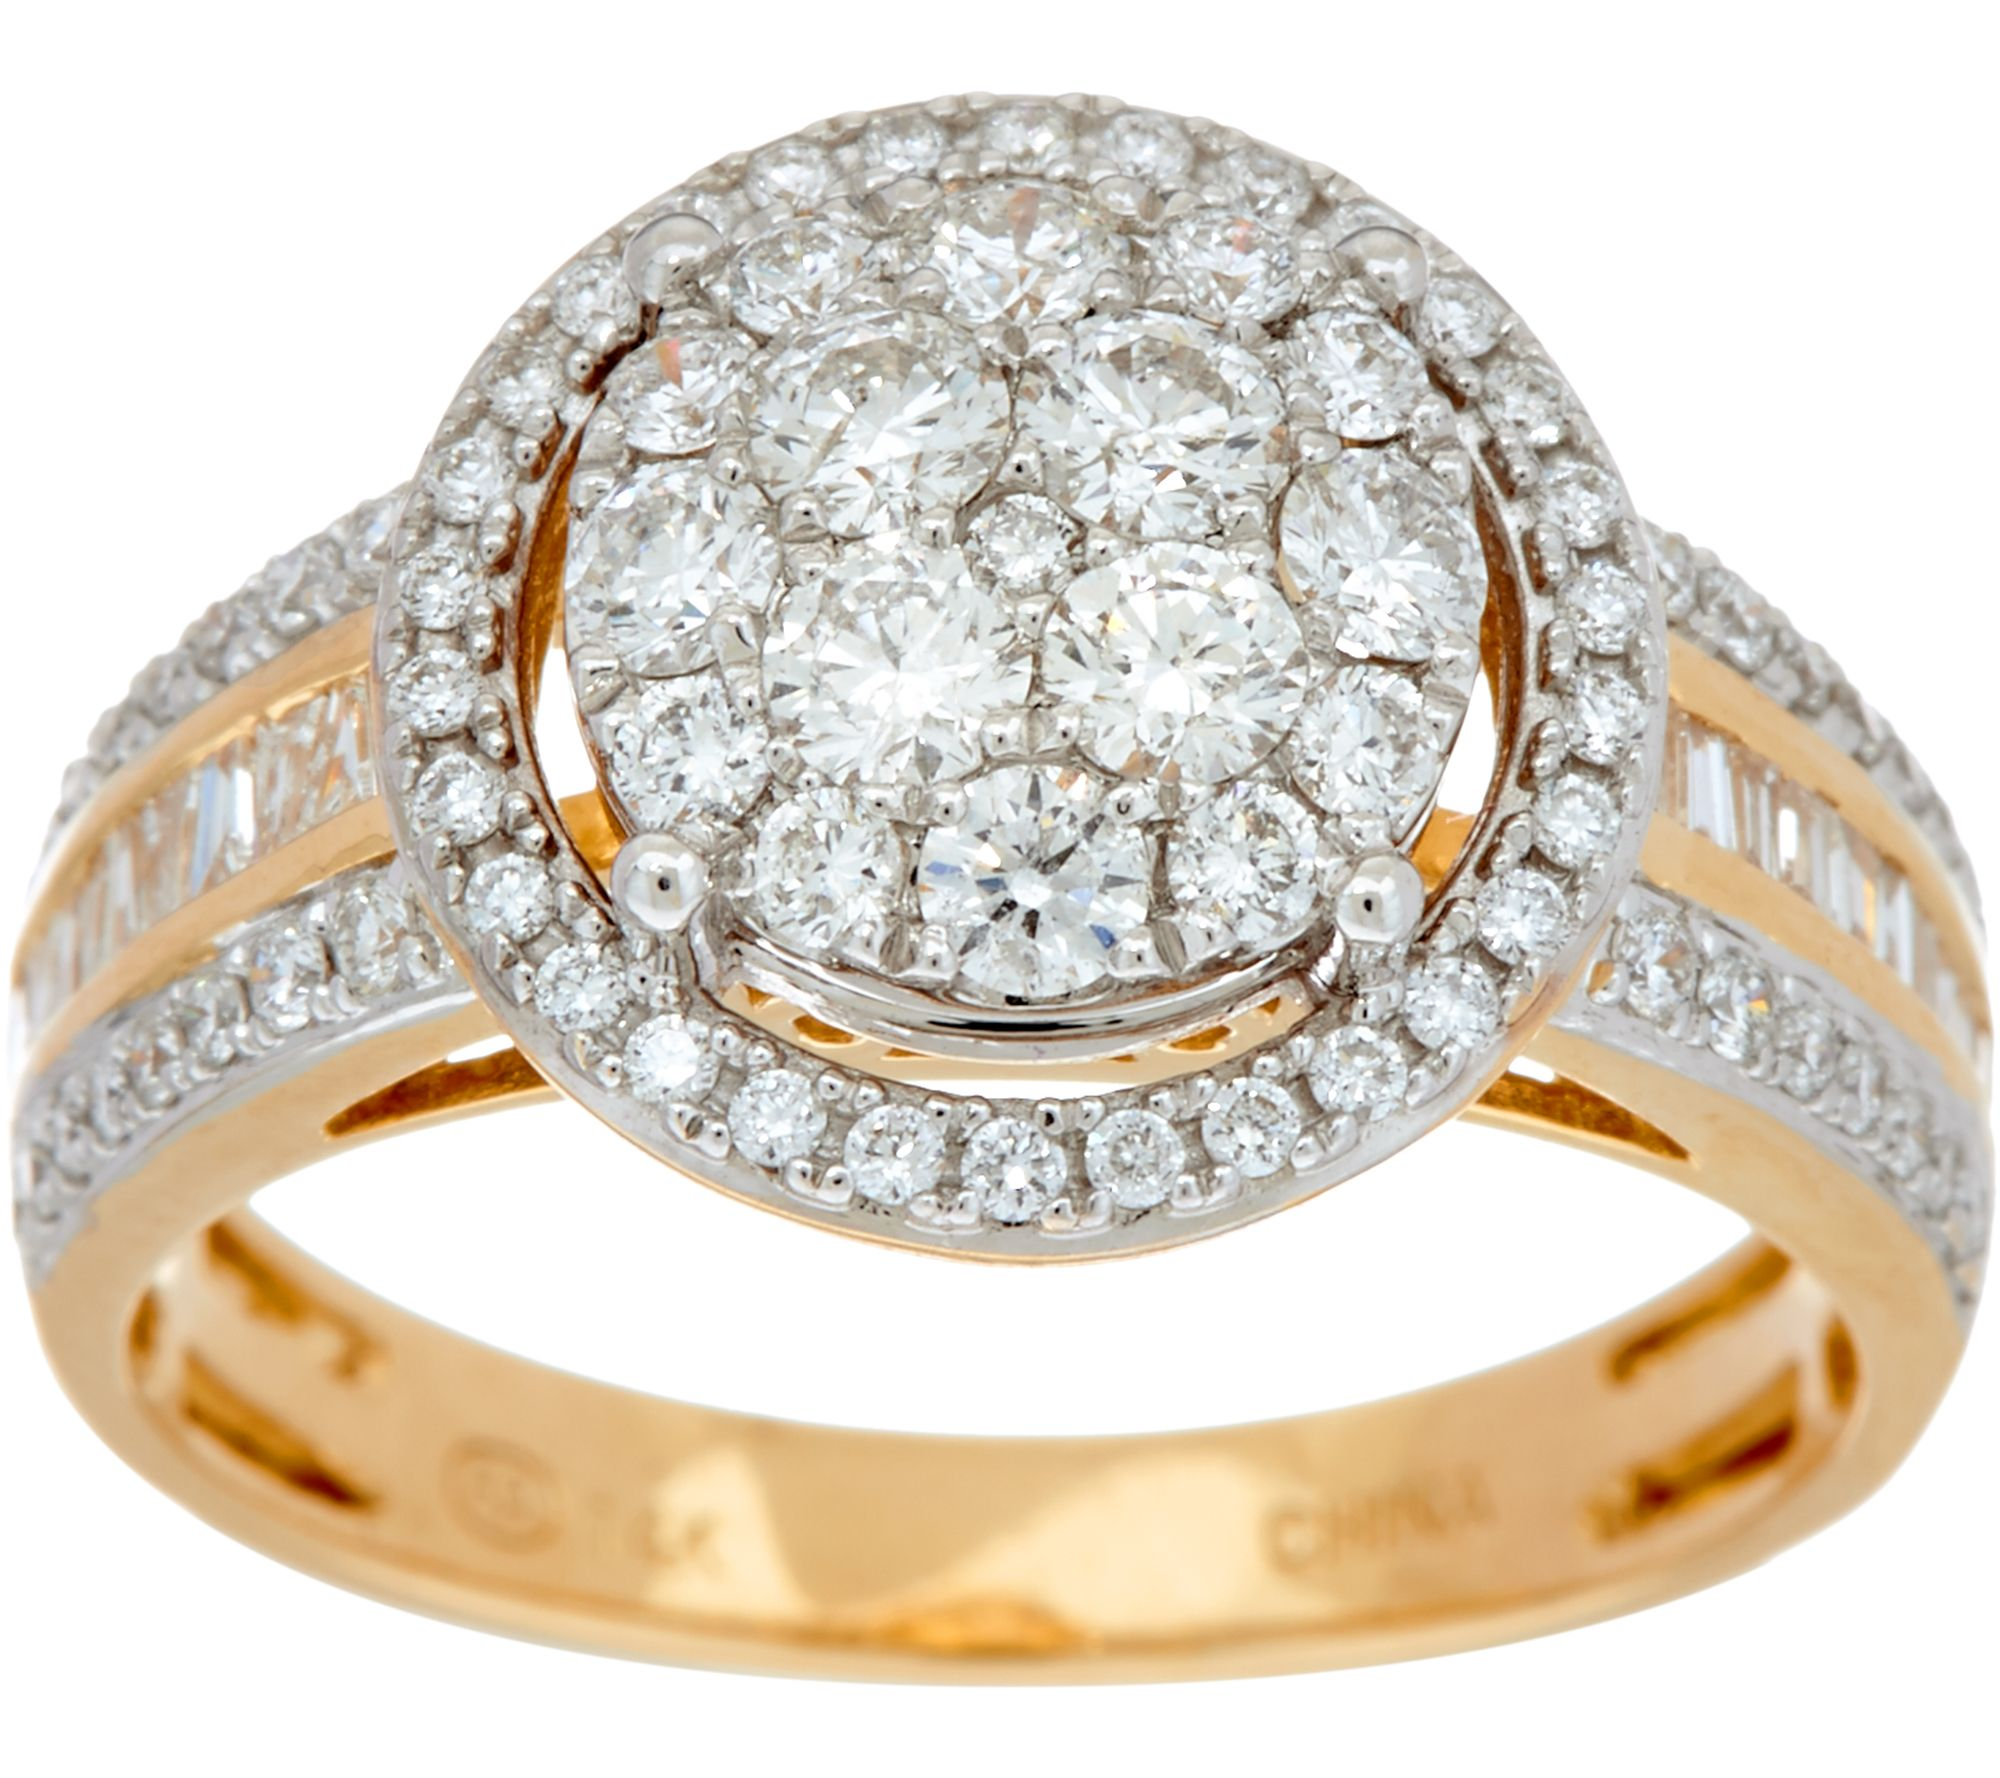 jewelry rings 1.00 cttw round cluster diamond ring 14k gold by affinity - page 1 - qvc.com ohngexa